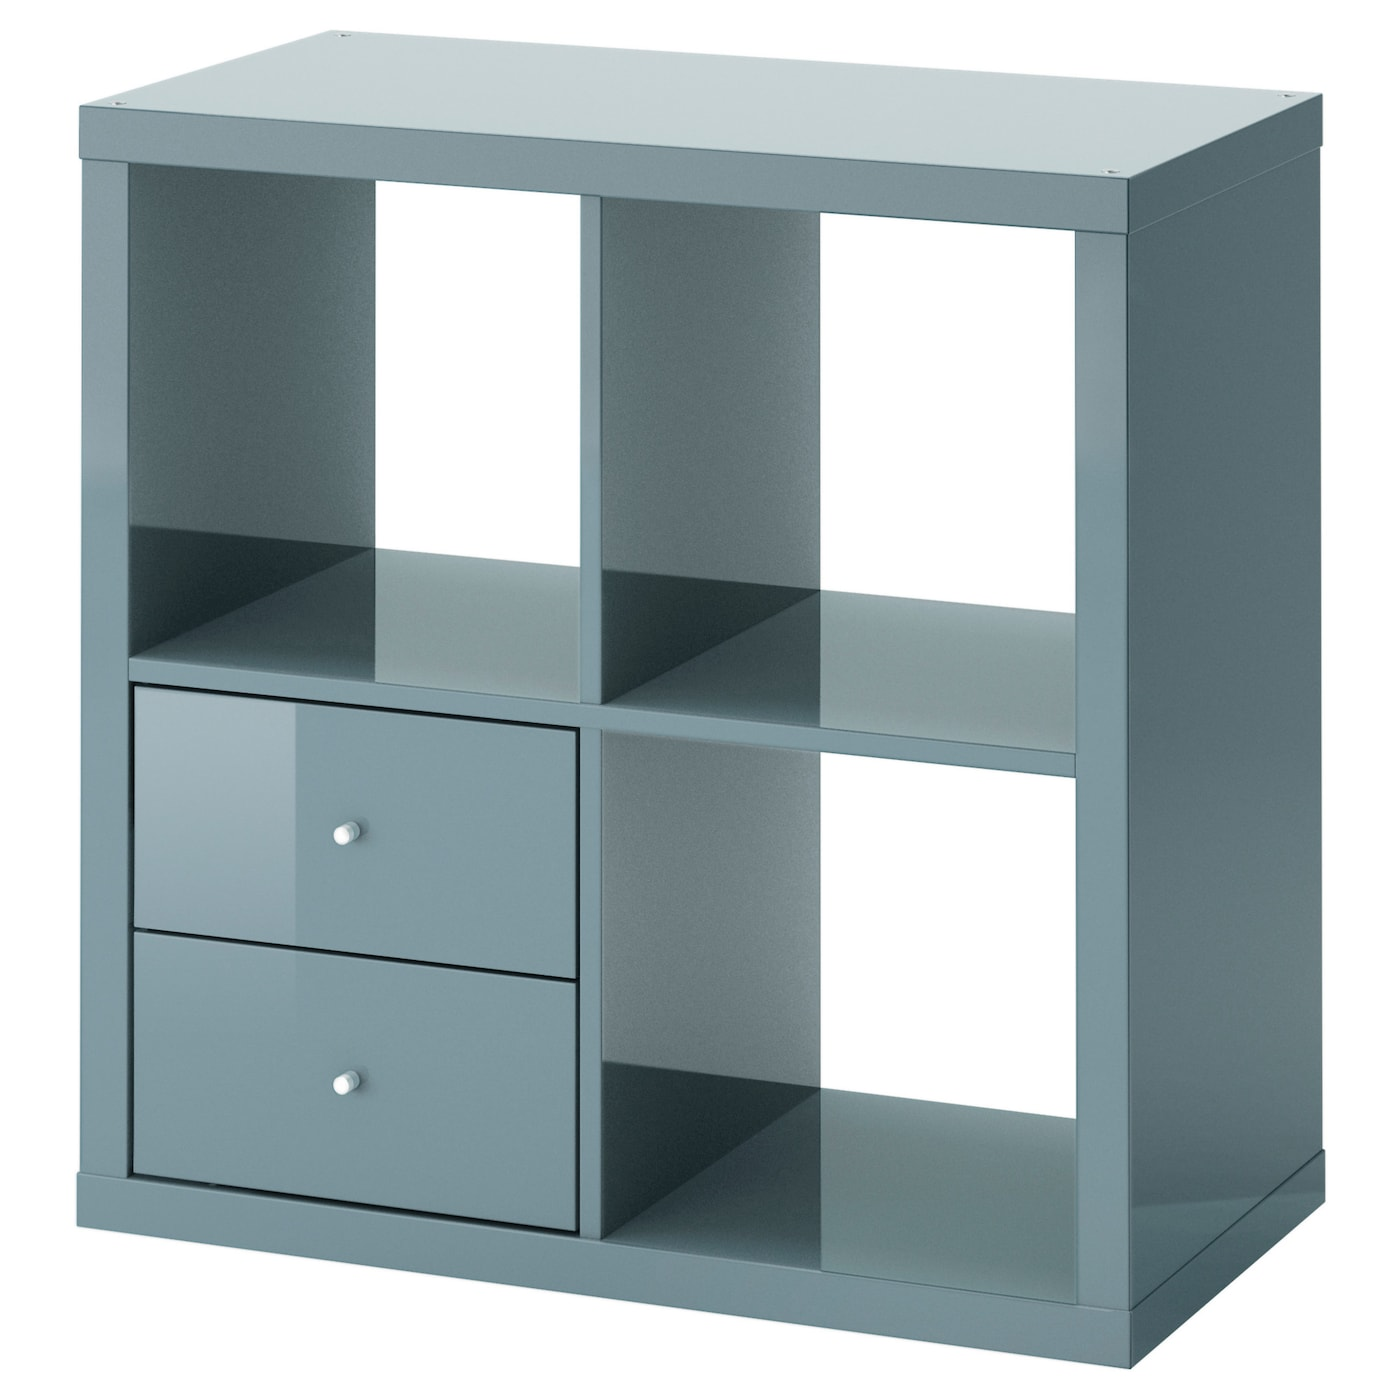 Kallax shelving unit with drawers high gloss grey turquoise 77x77 cm ikea - Etagere escalier ikea ...